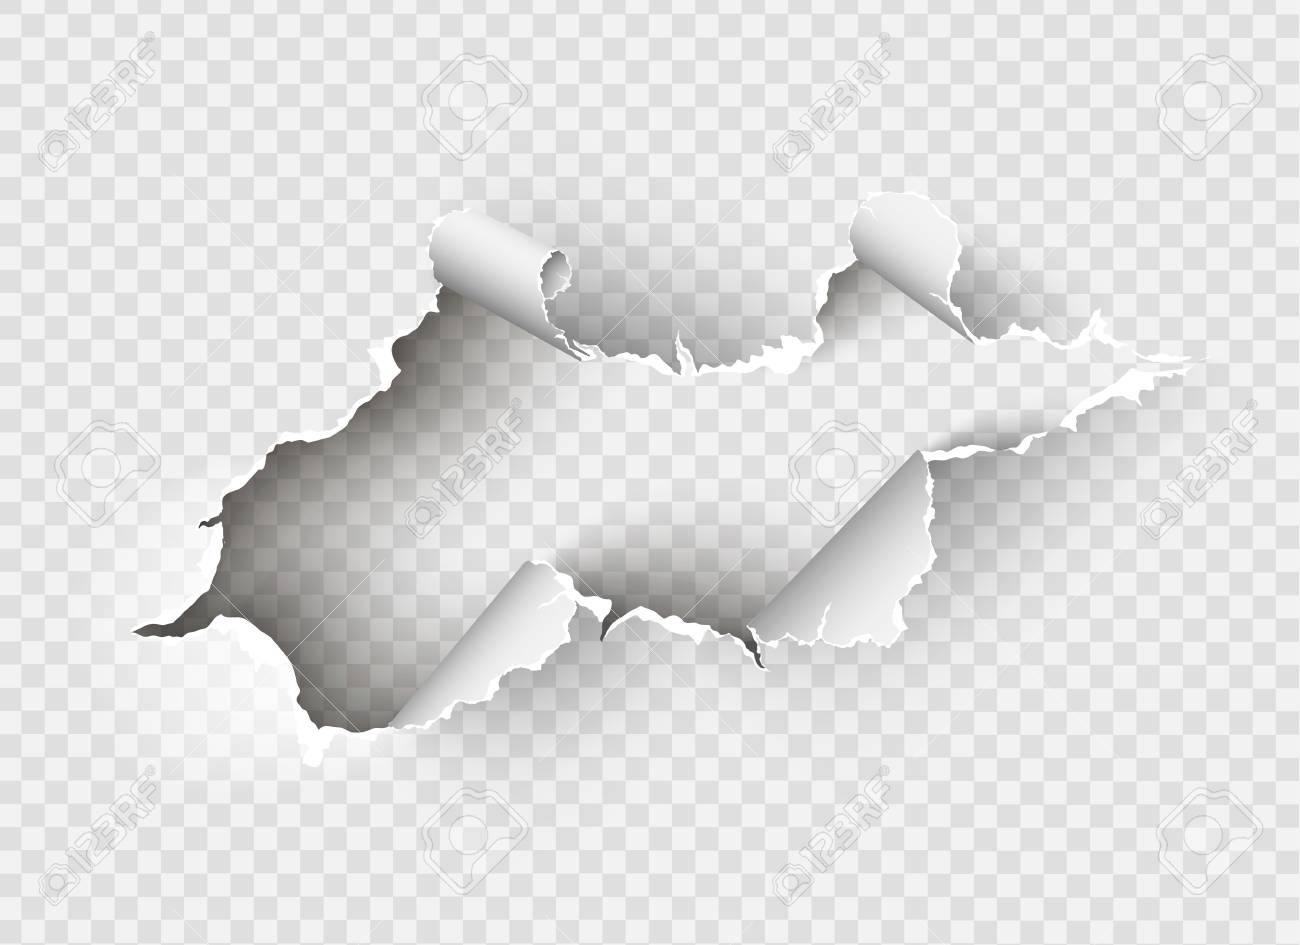 ragged Hole torn in ripped paper on transparent background - 104013227